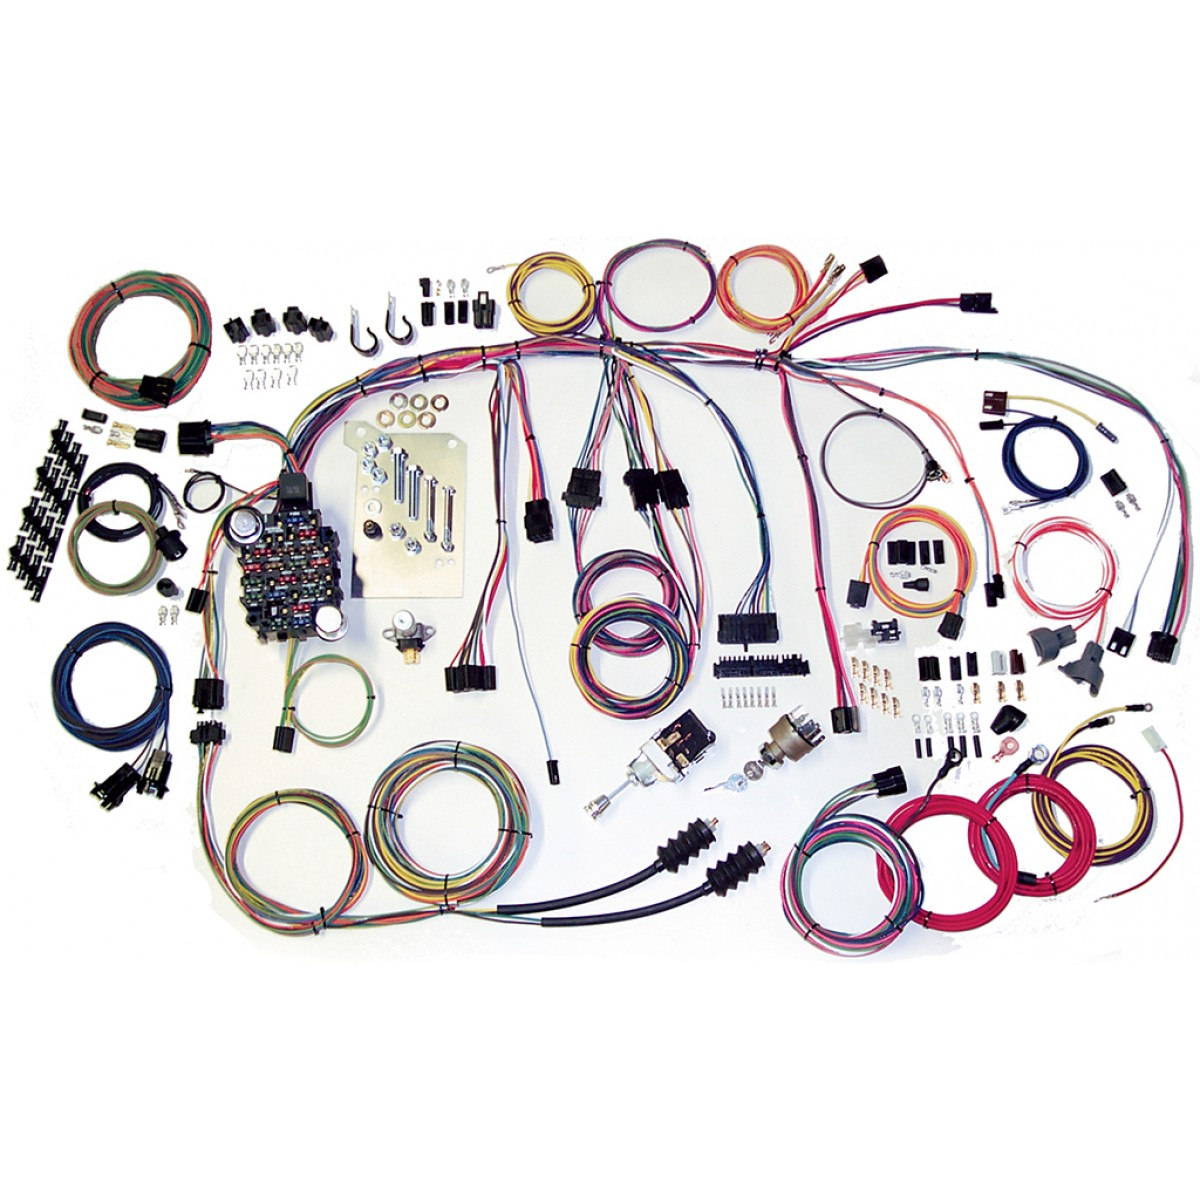 chevy c10 wiring harness complete wiring harness kit 1960 1966 rh code510  com